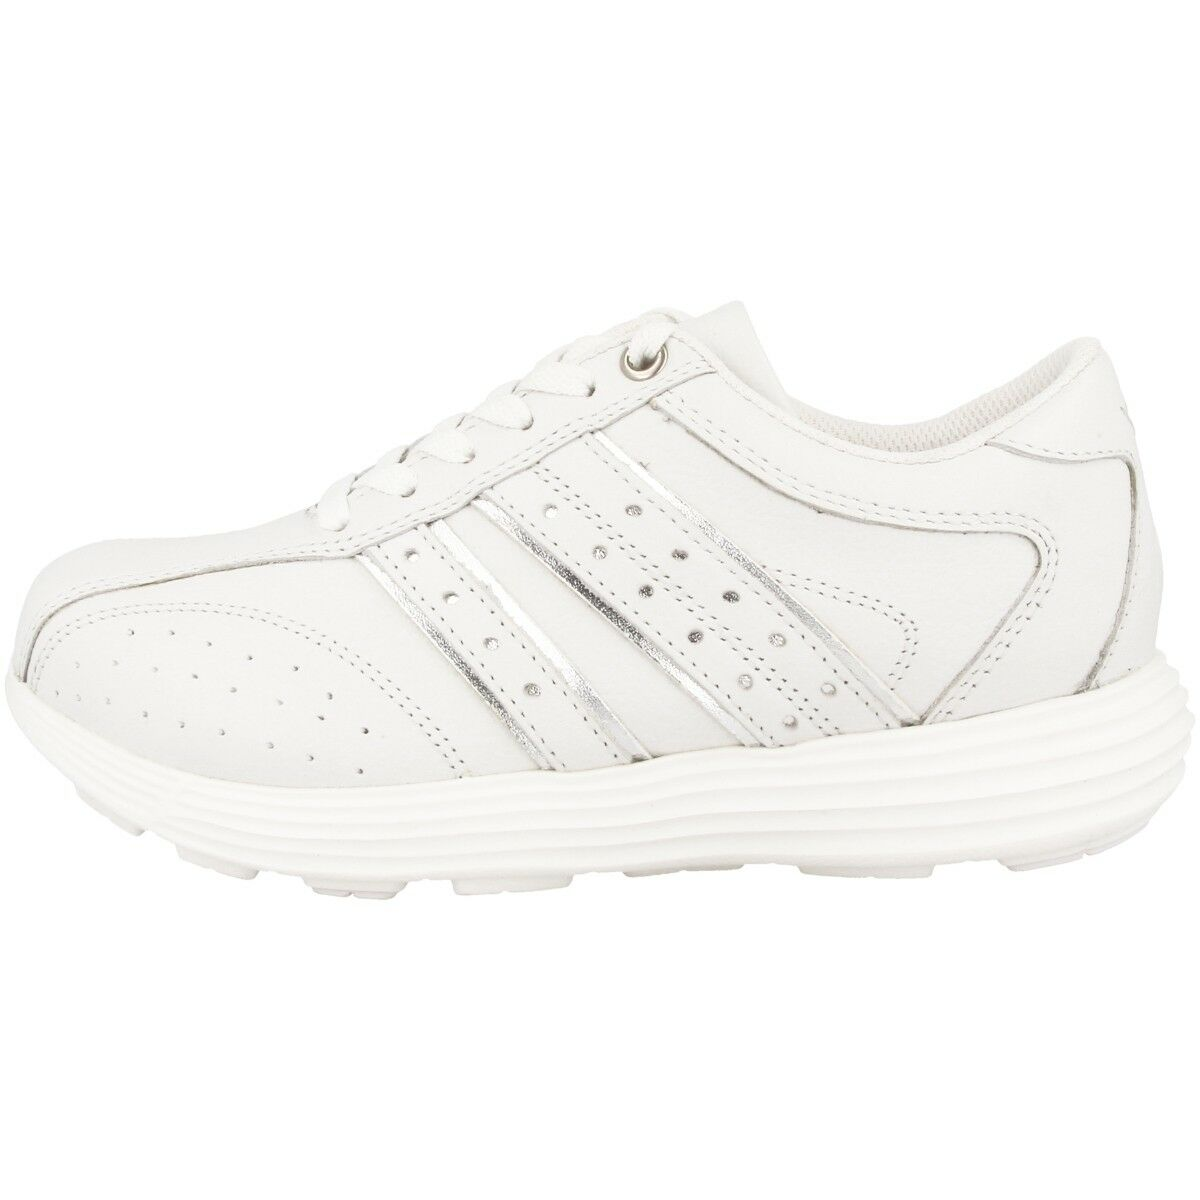 Chung Shi Duxfree Roma Calzado women Zapatillas Casuales whiteo 8800660